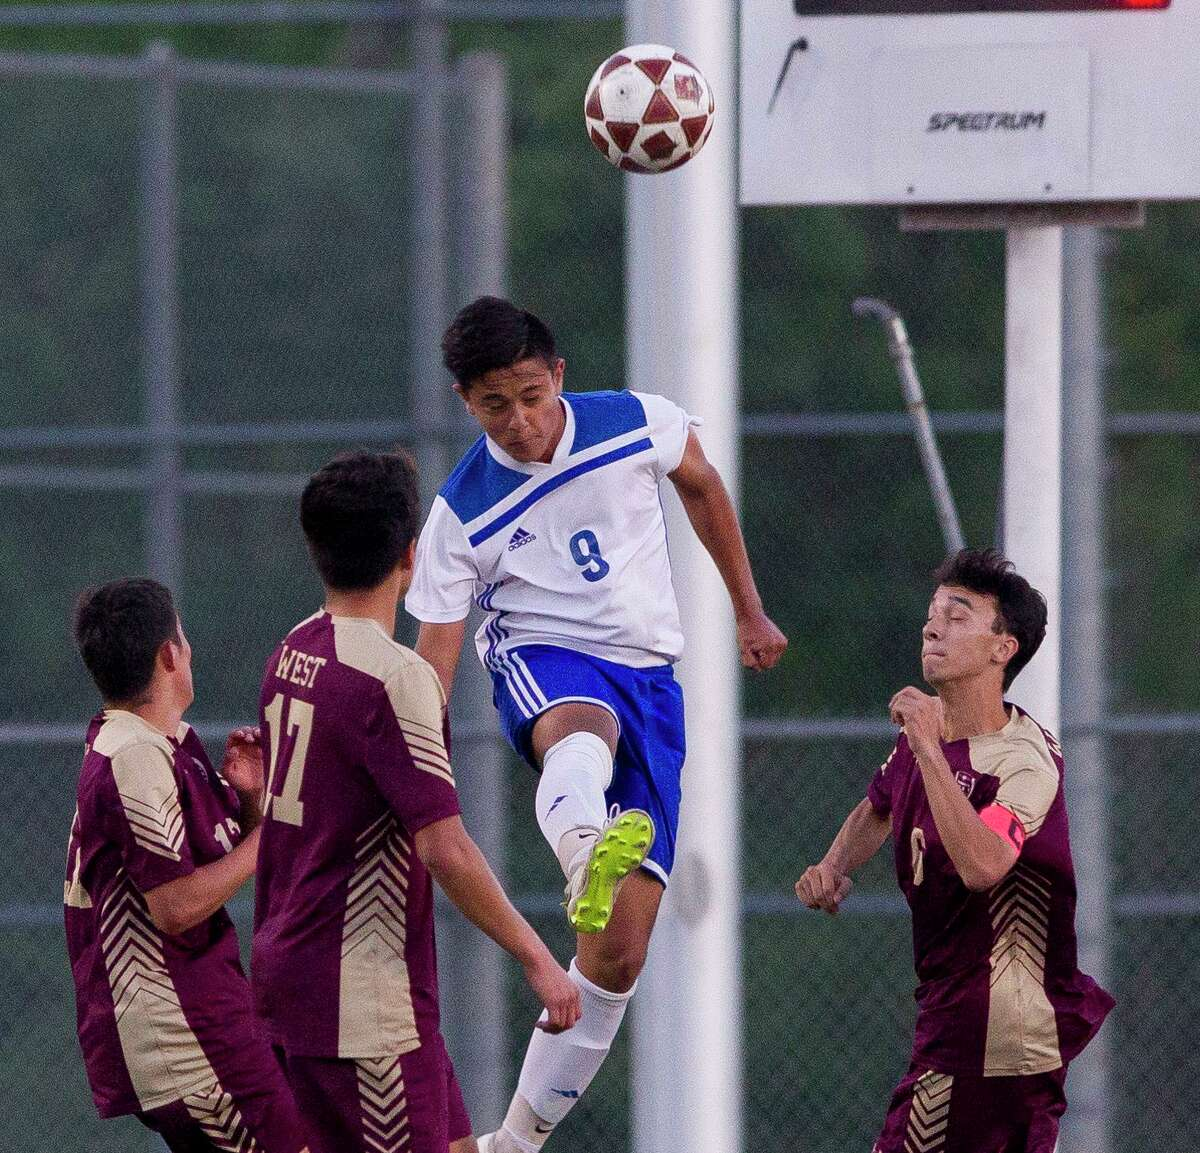 New Caney senior Charlie Aguilera plans to study engineering in college.